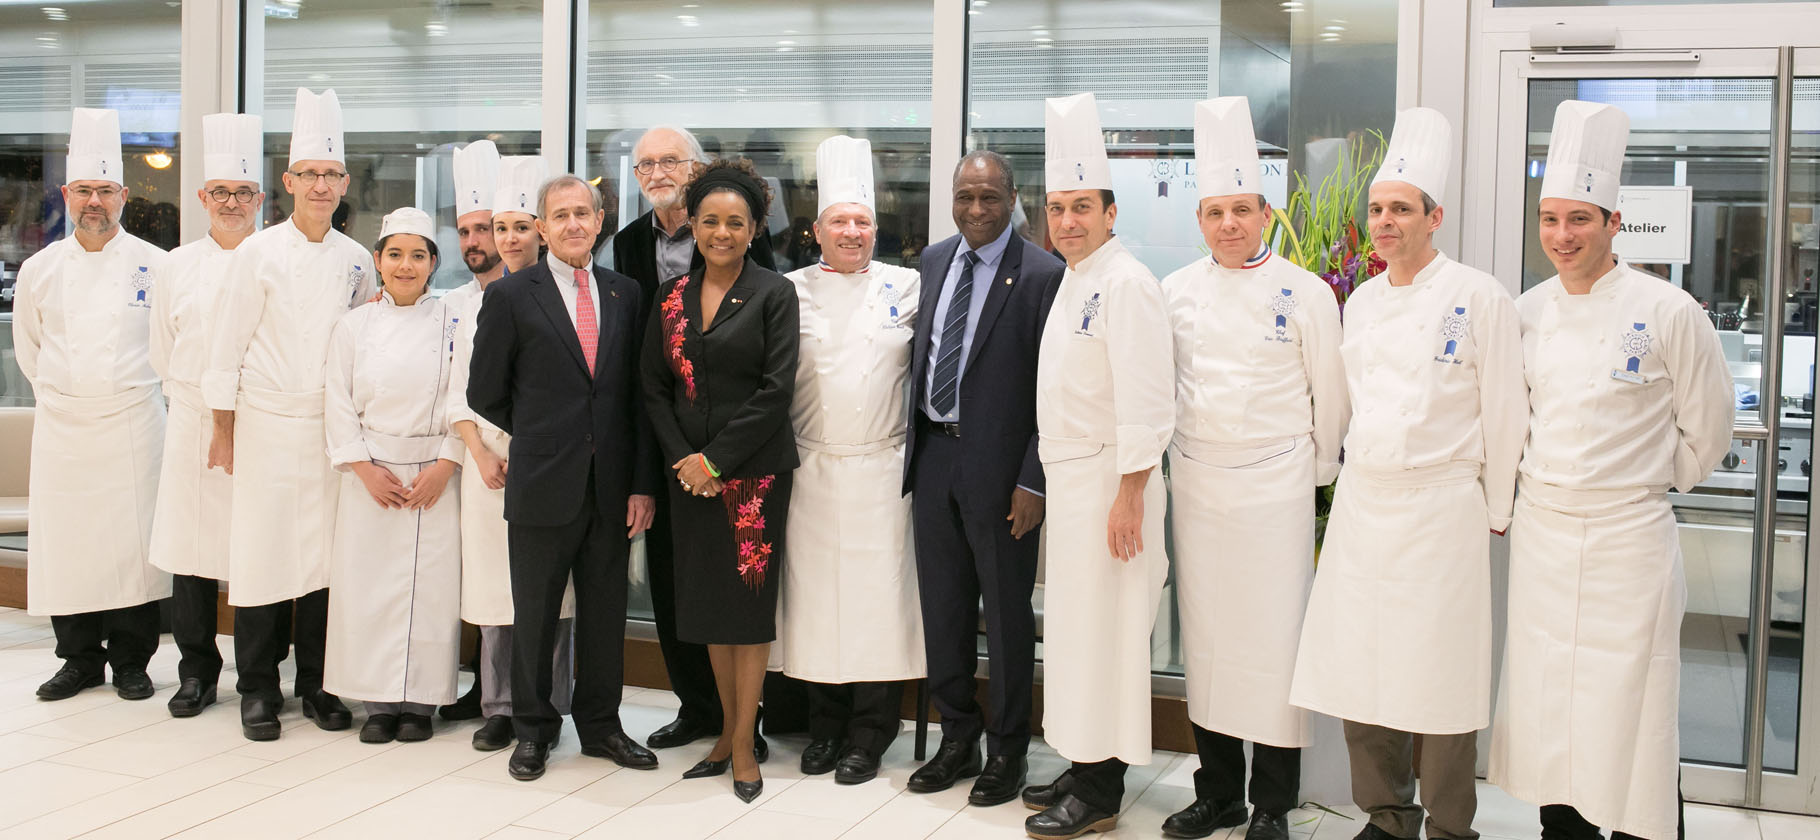 Francophonie week comes to a close at Le Cordon Bleu Paris institute